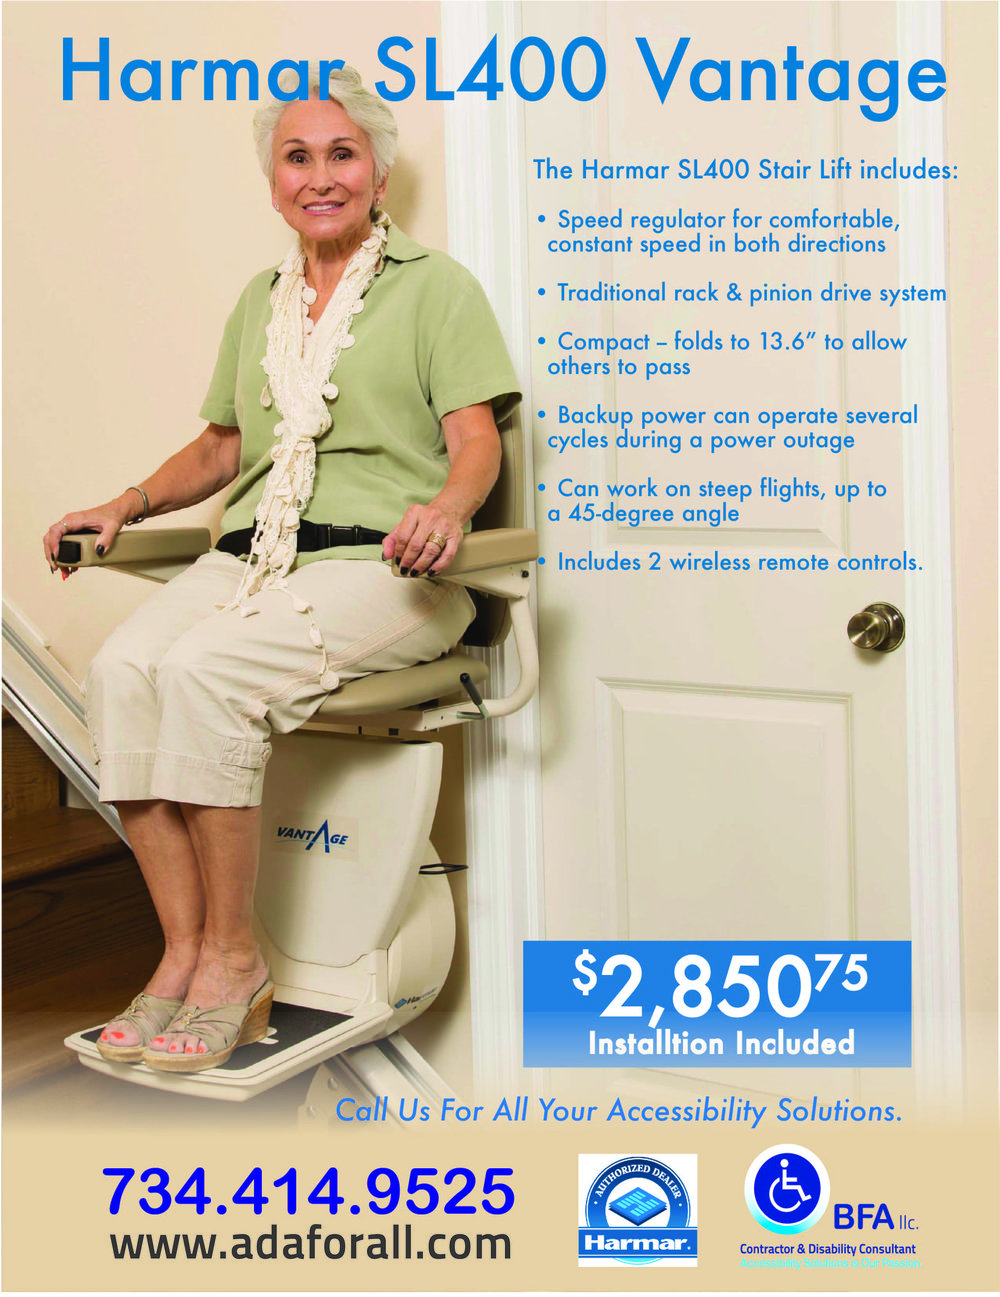 HARMAR Vantage Stair Lift is the deal of the year! Call us today at 734-414-9525.